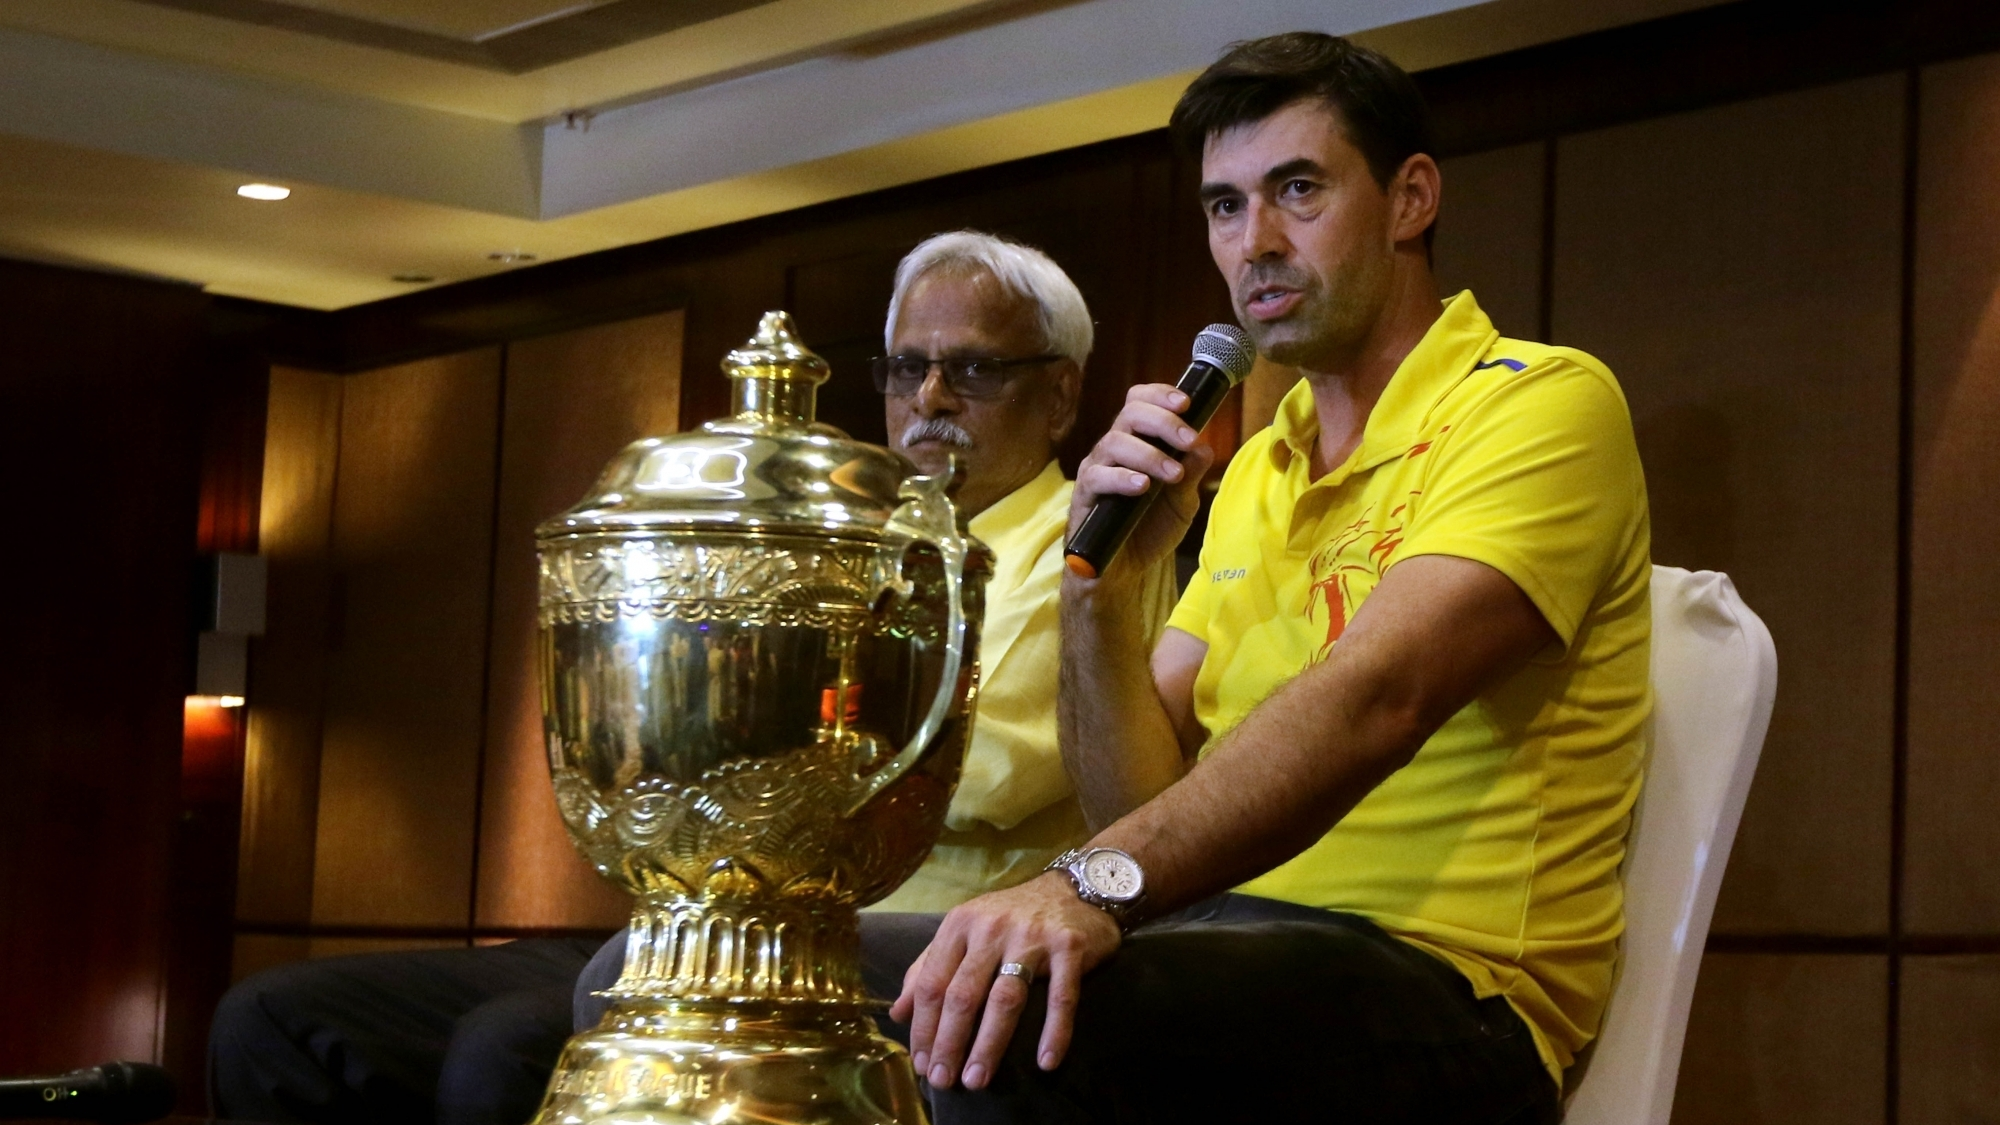 IPL 2018: Stephen Fleming credits MS Dhoni's leadership for CSK's tournament success